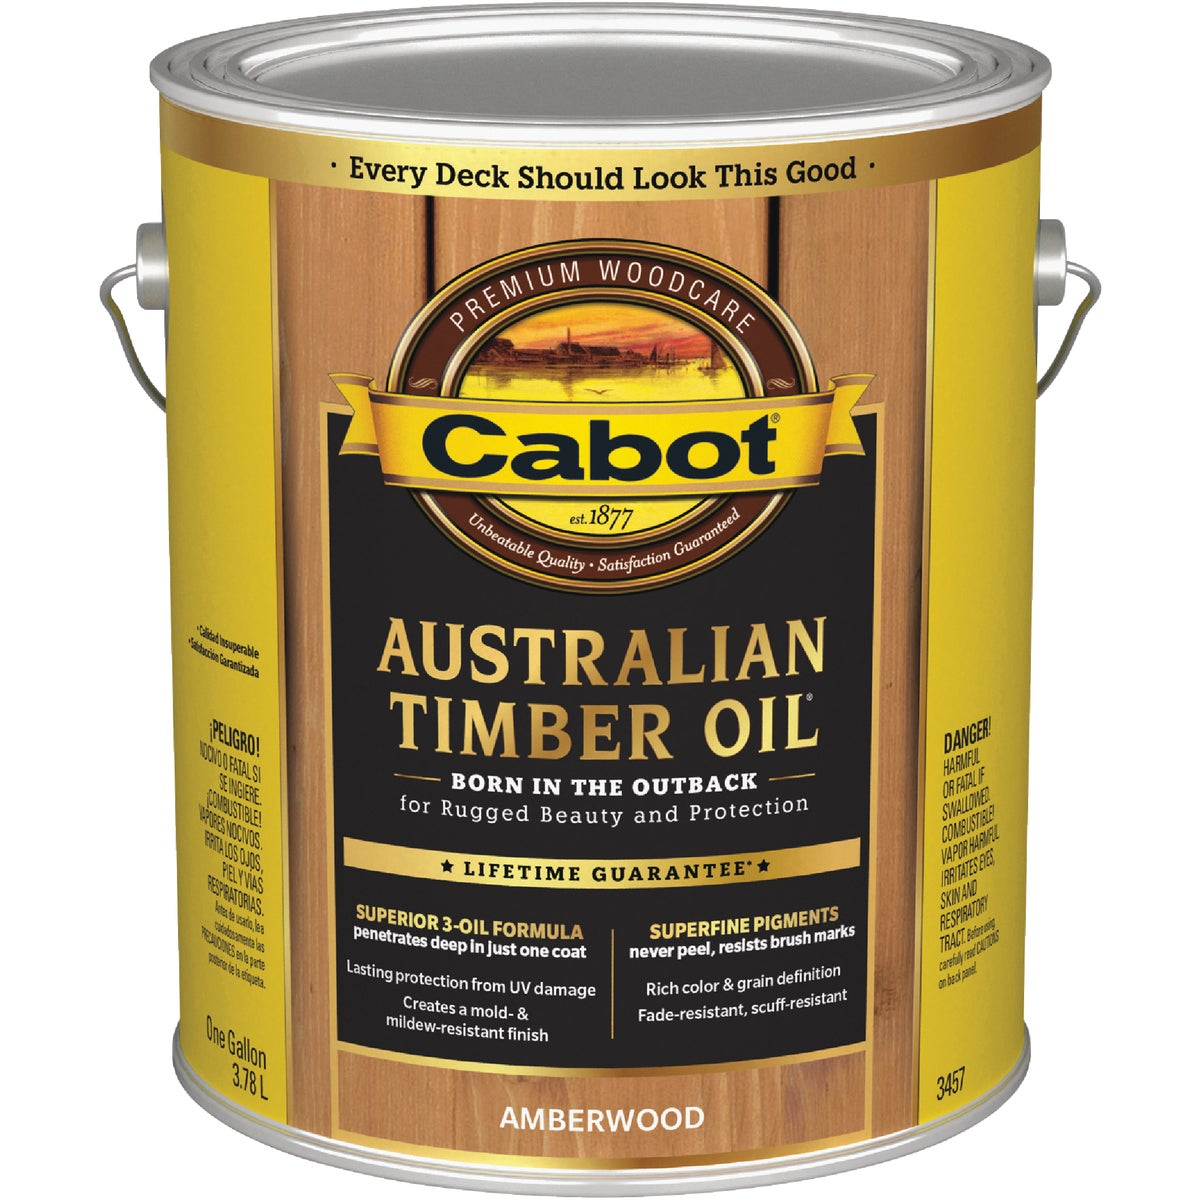 AMBRWD TIMBER OIL FINISH - 140.0003457.007 by Valspar Corp